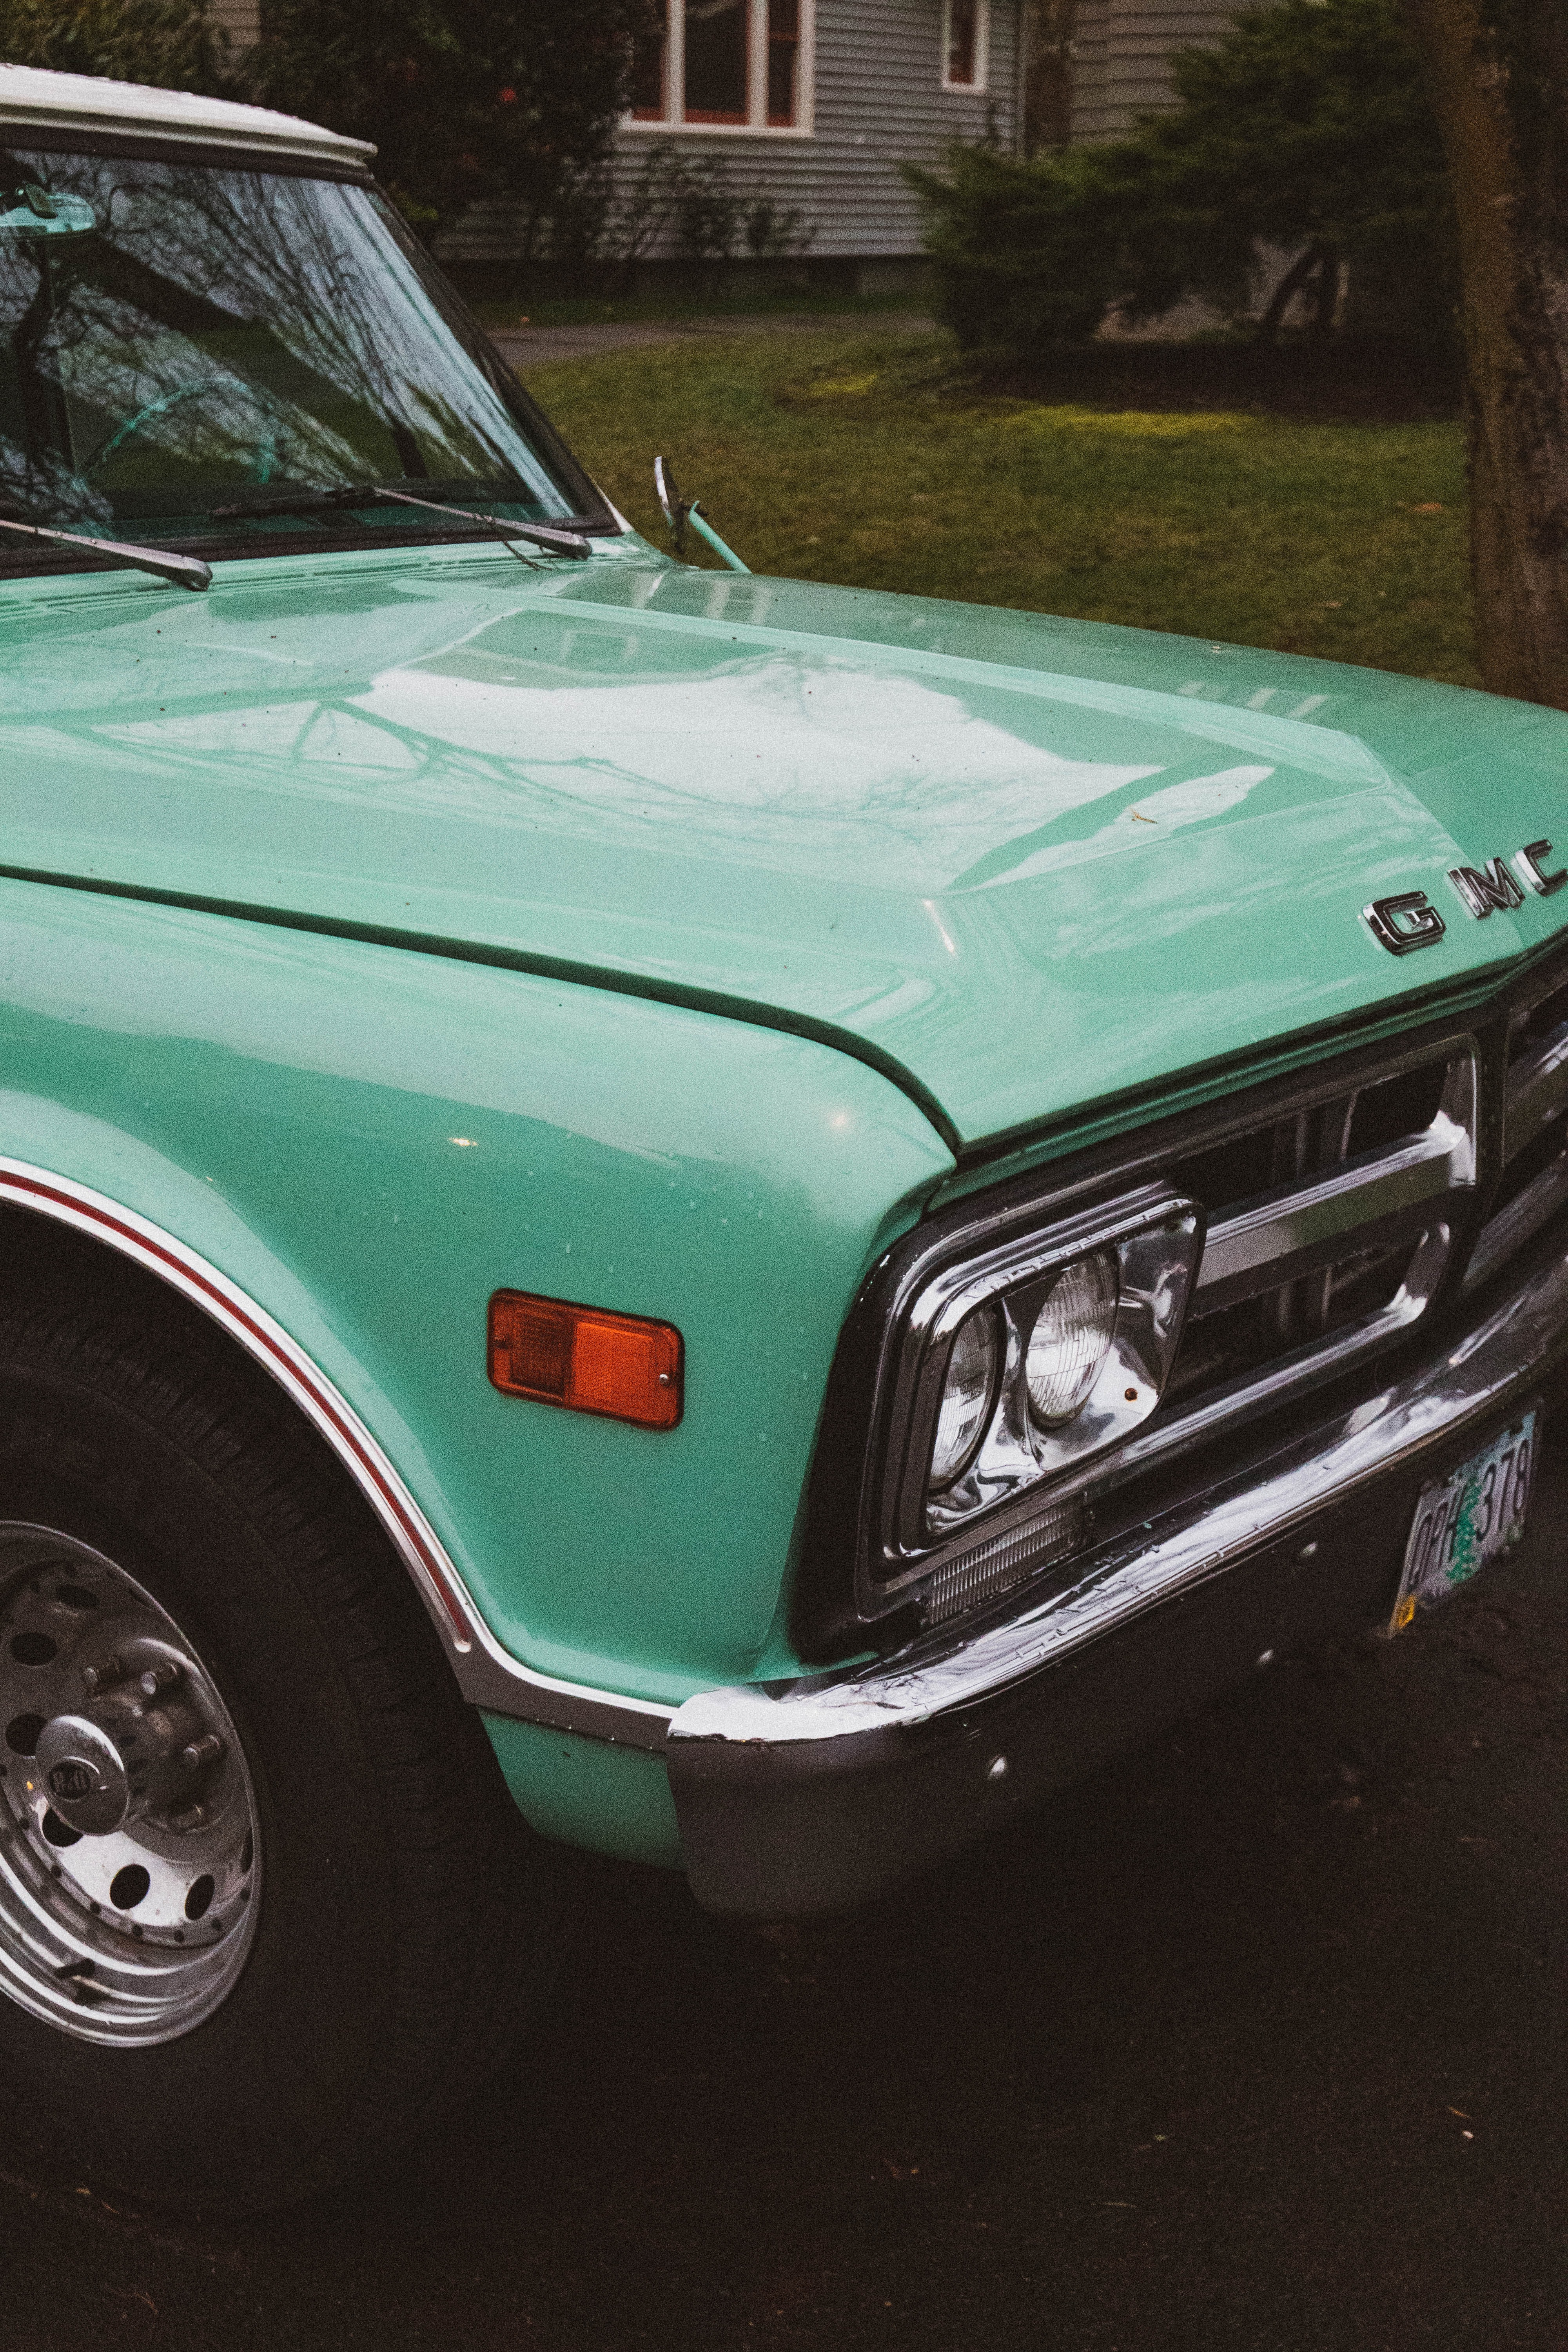 157261 free download Turquoise wallpapers for phone, Cars, Car, Machine, Vintage, Old Turquoise images and screensavers for mobile